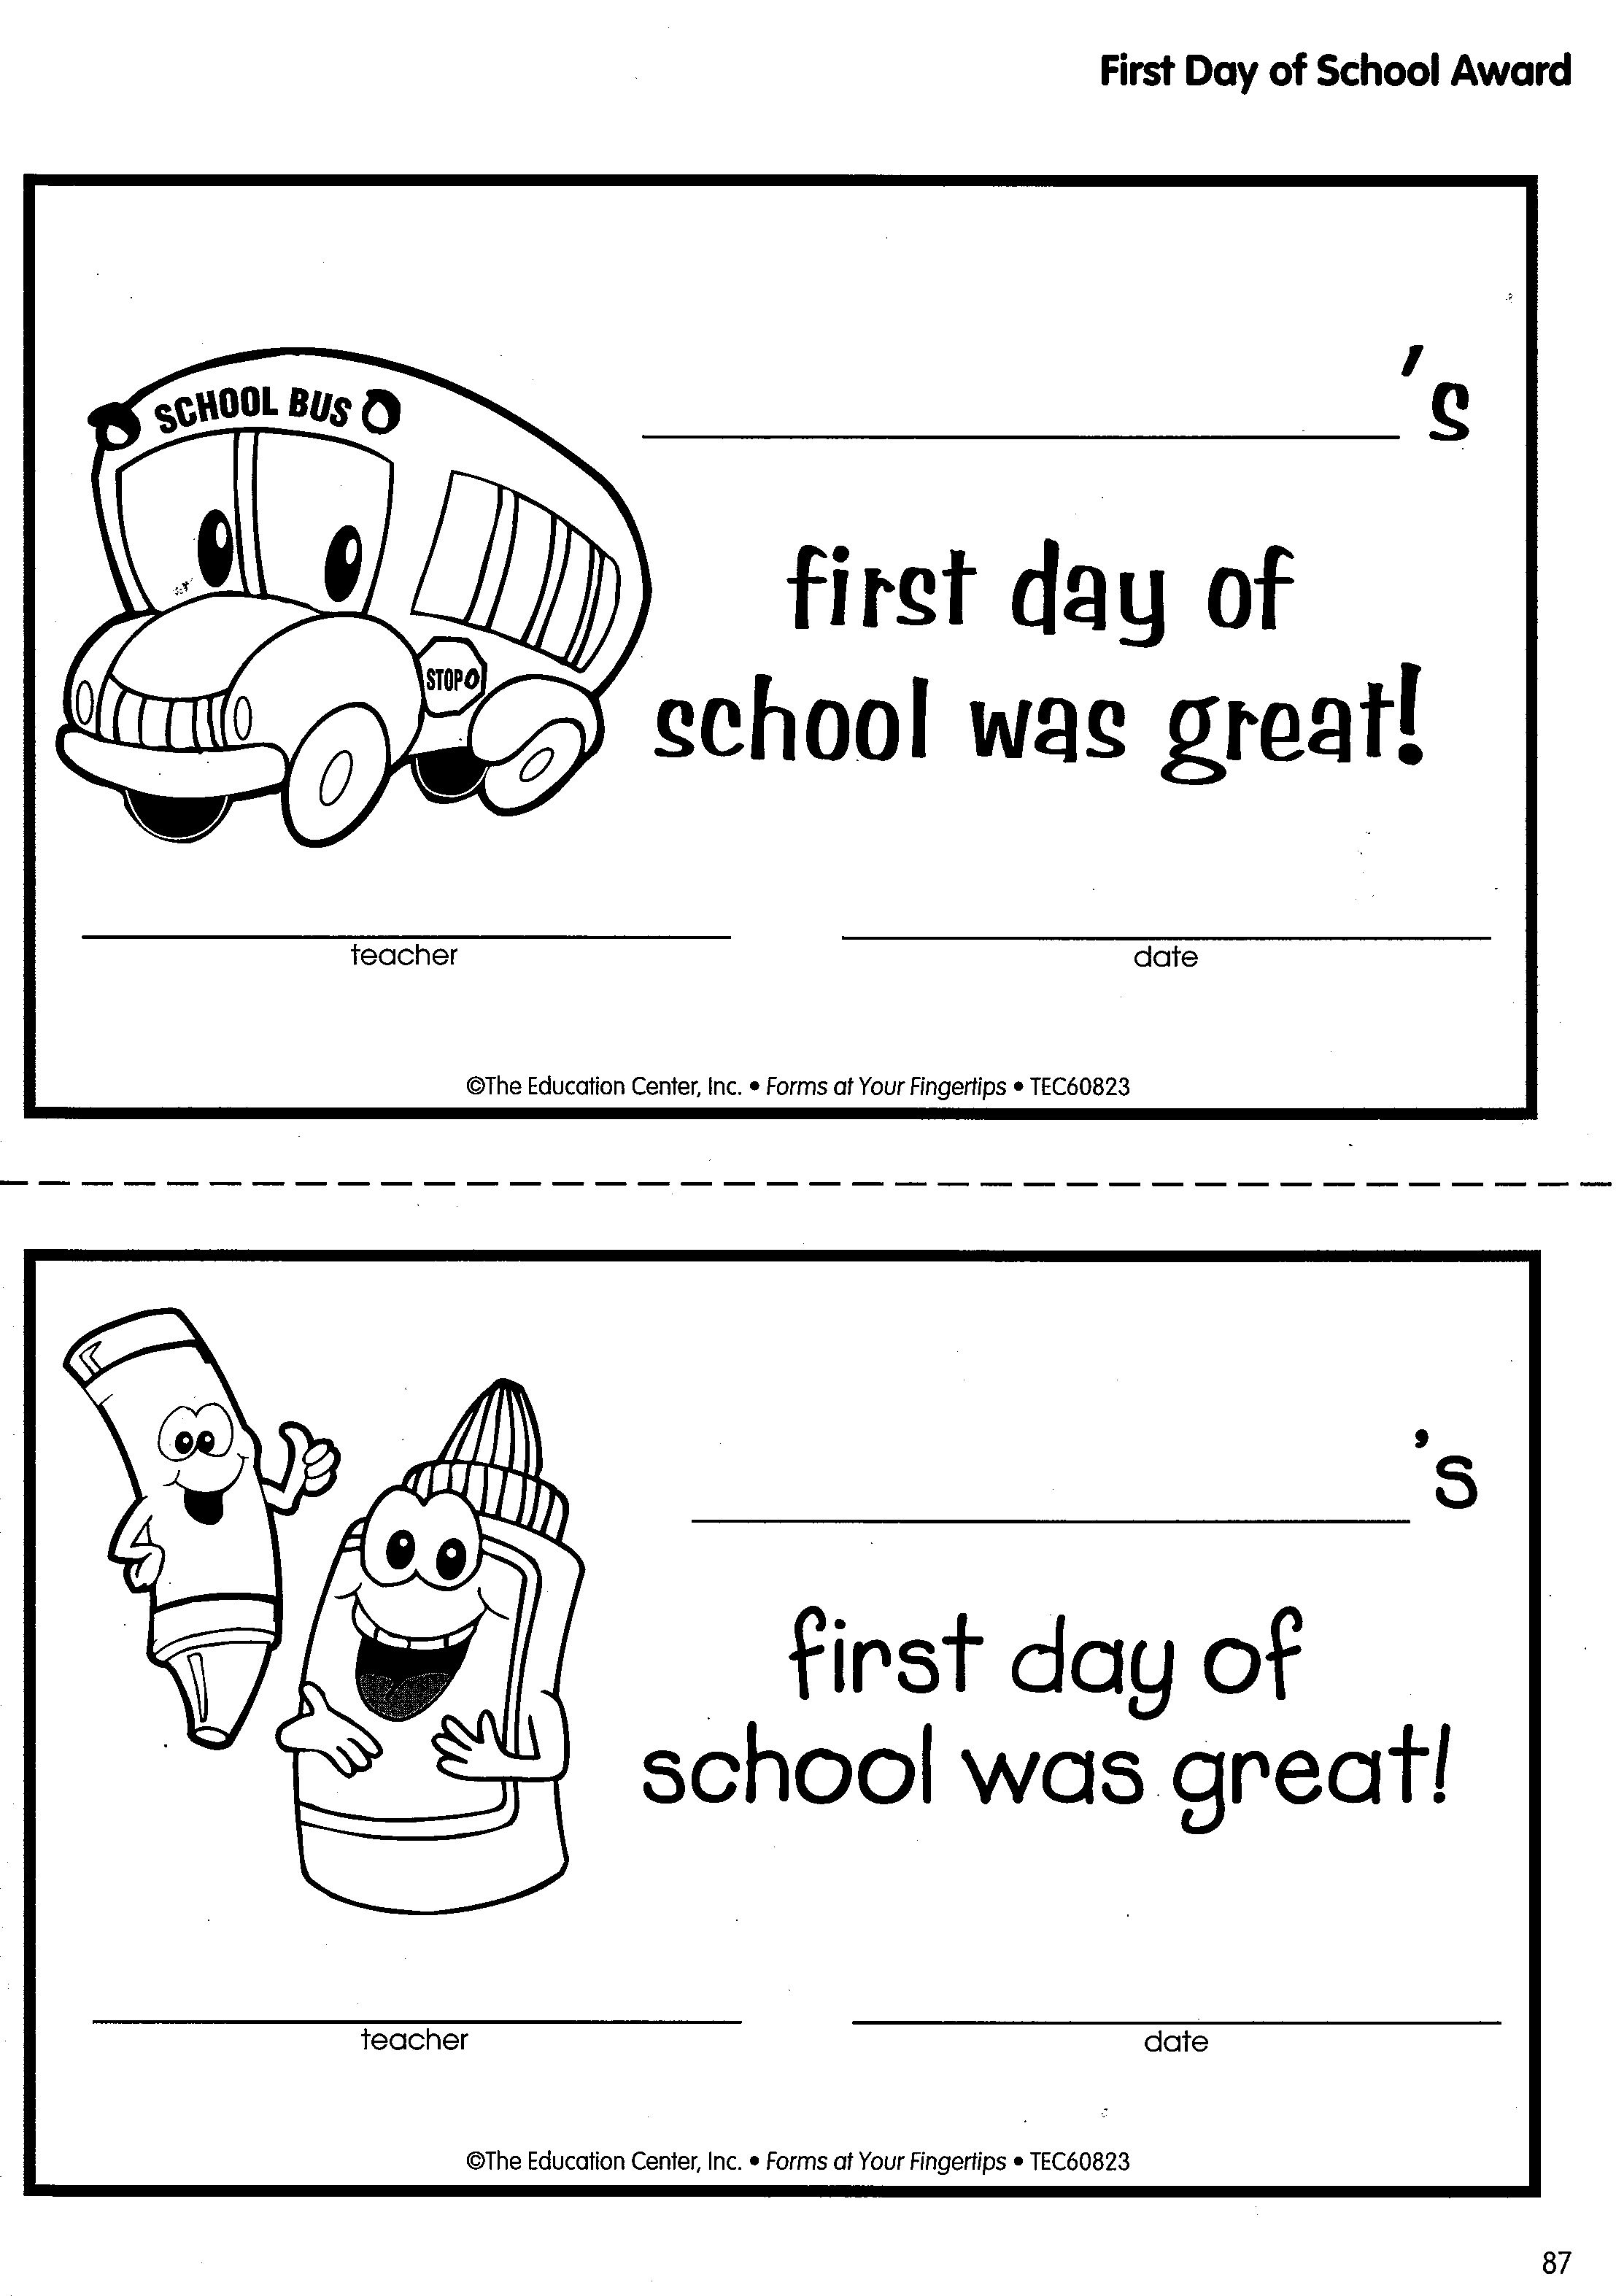 First Day Of School Awards Compliments Of Forms At Your Fingertips Now 30 Off At Http Store Oblockbook 1st Day Of School First Day Of School School Awards